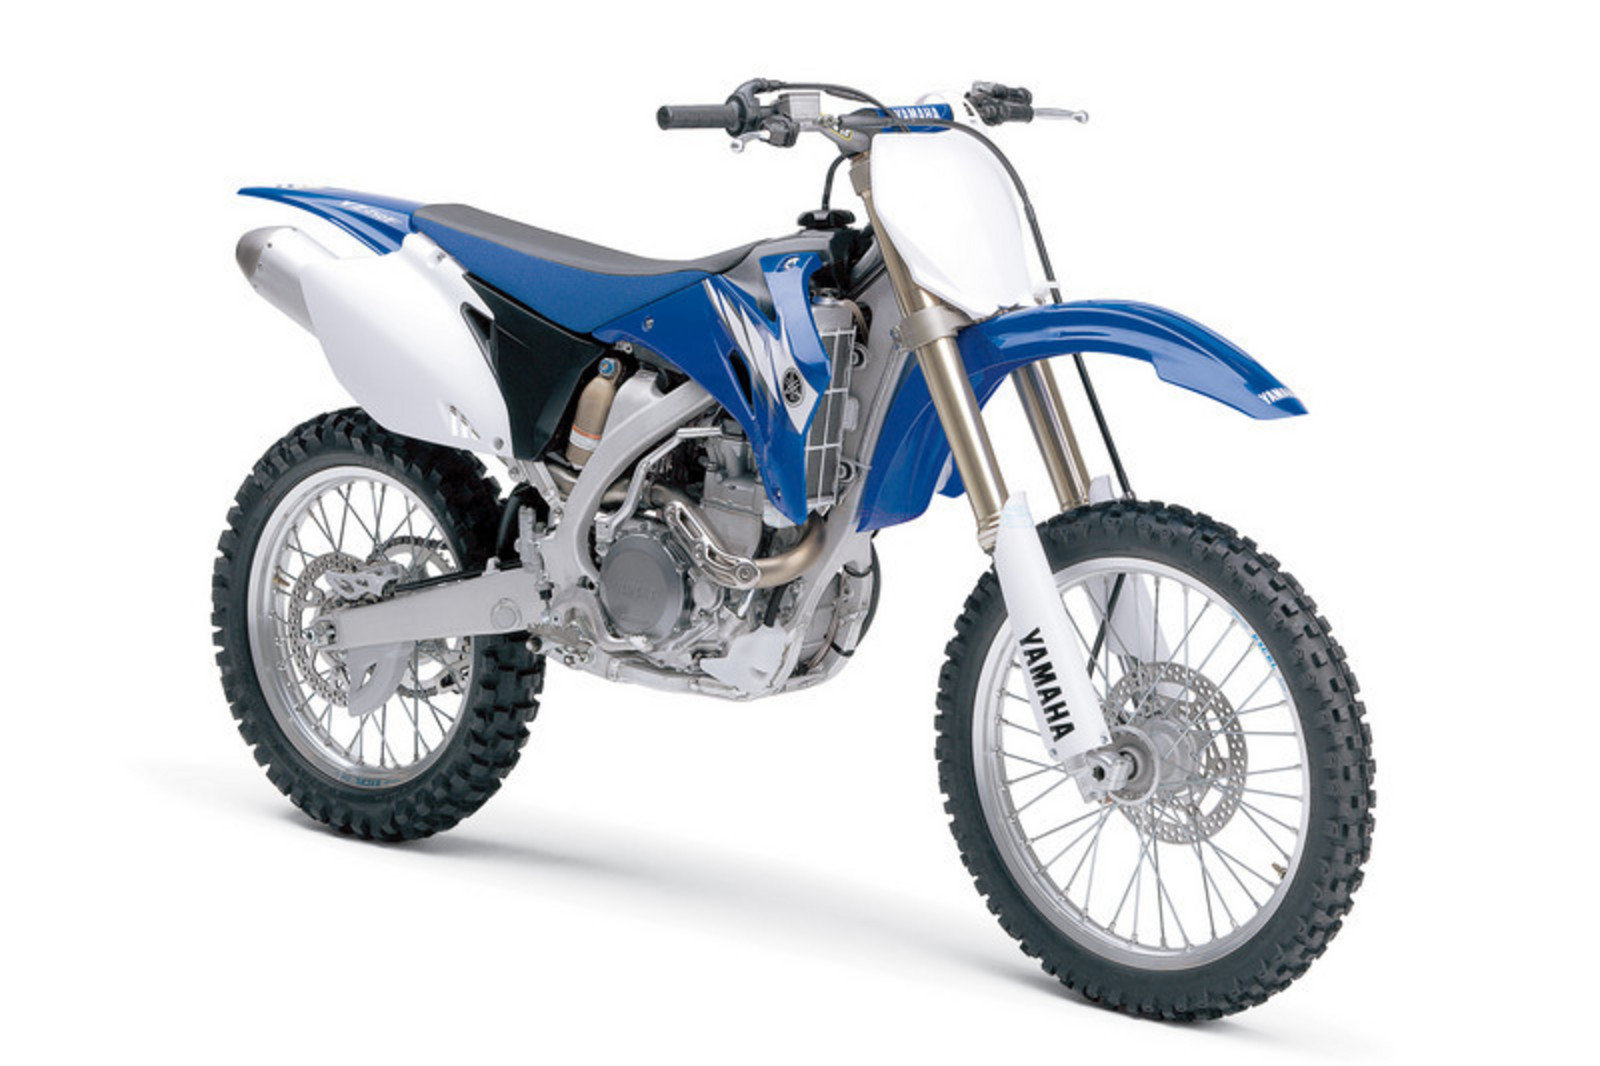 2006 yamaha yz450f review top speed